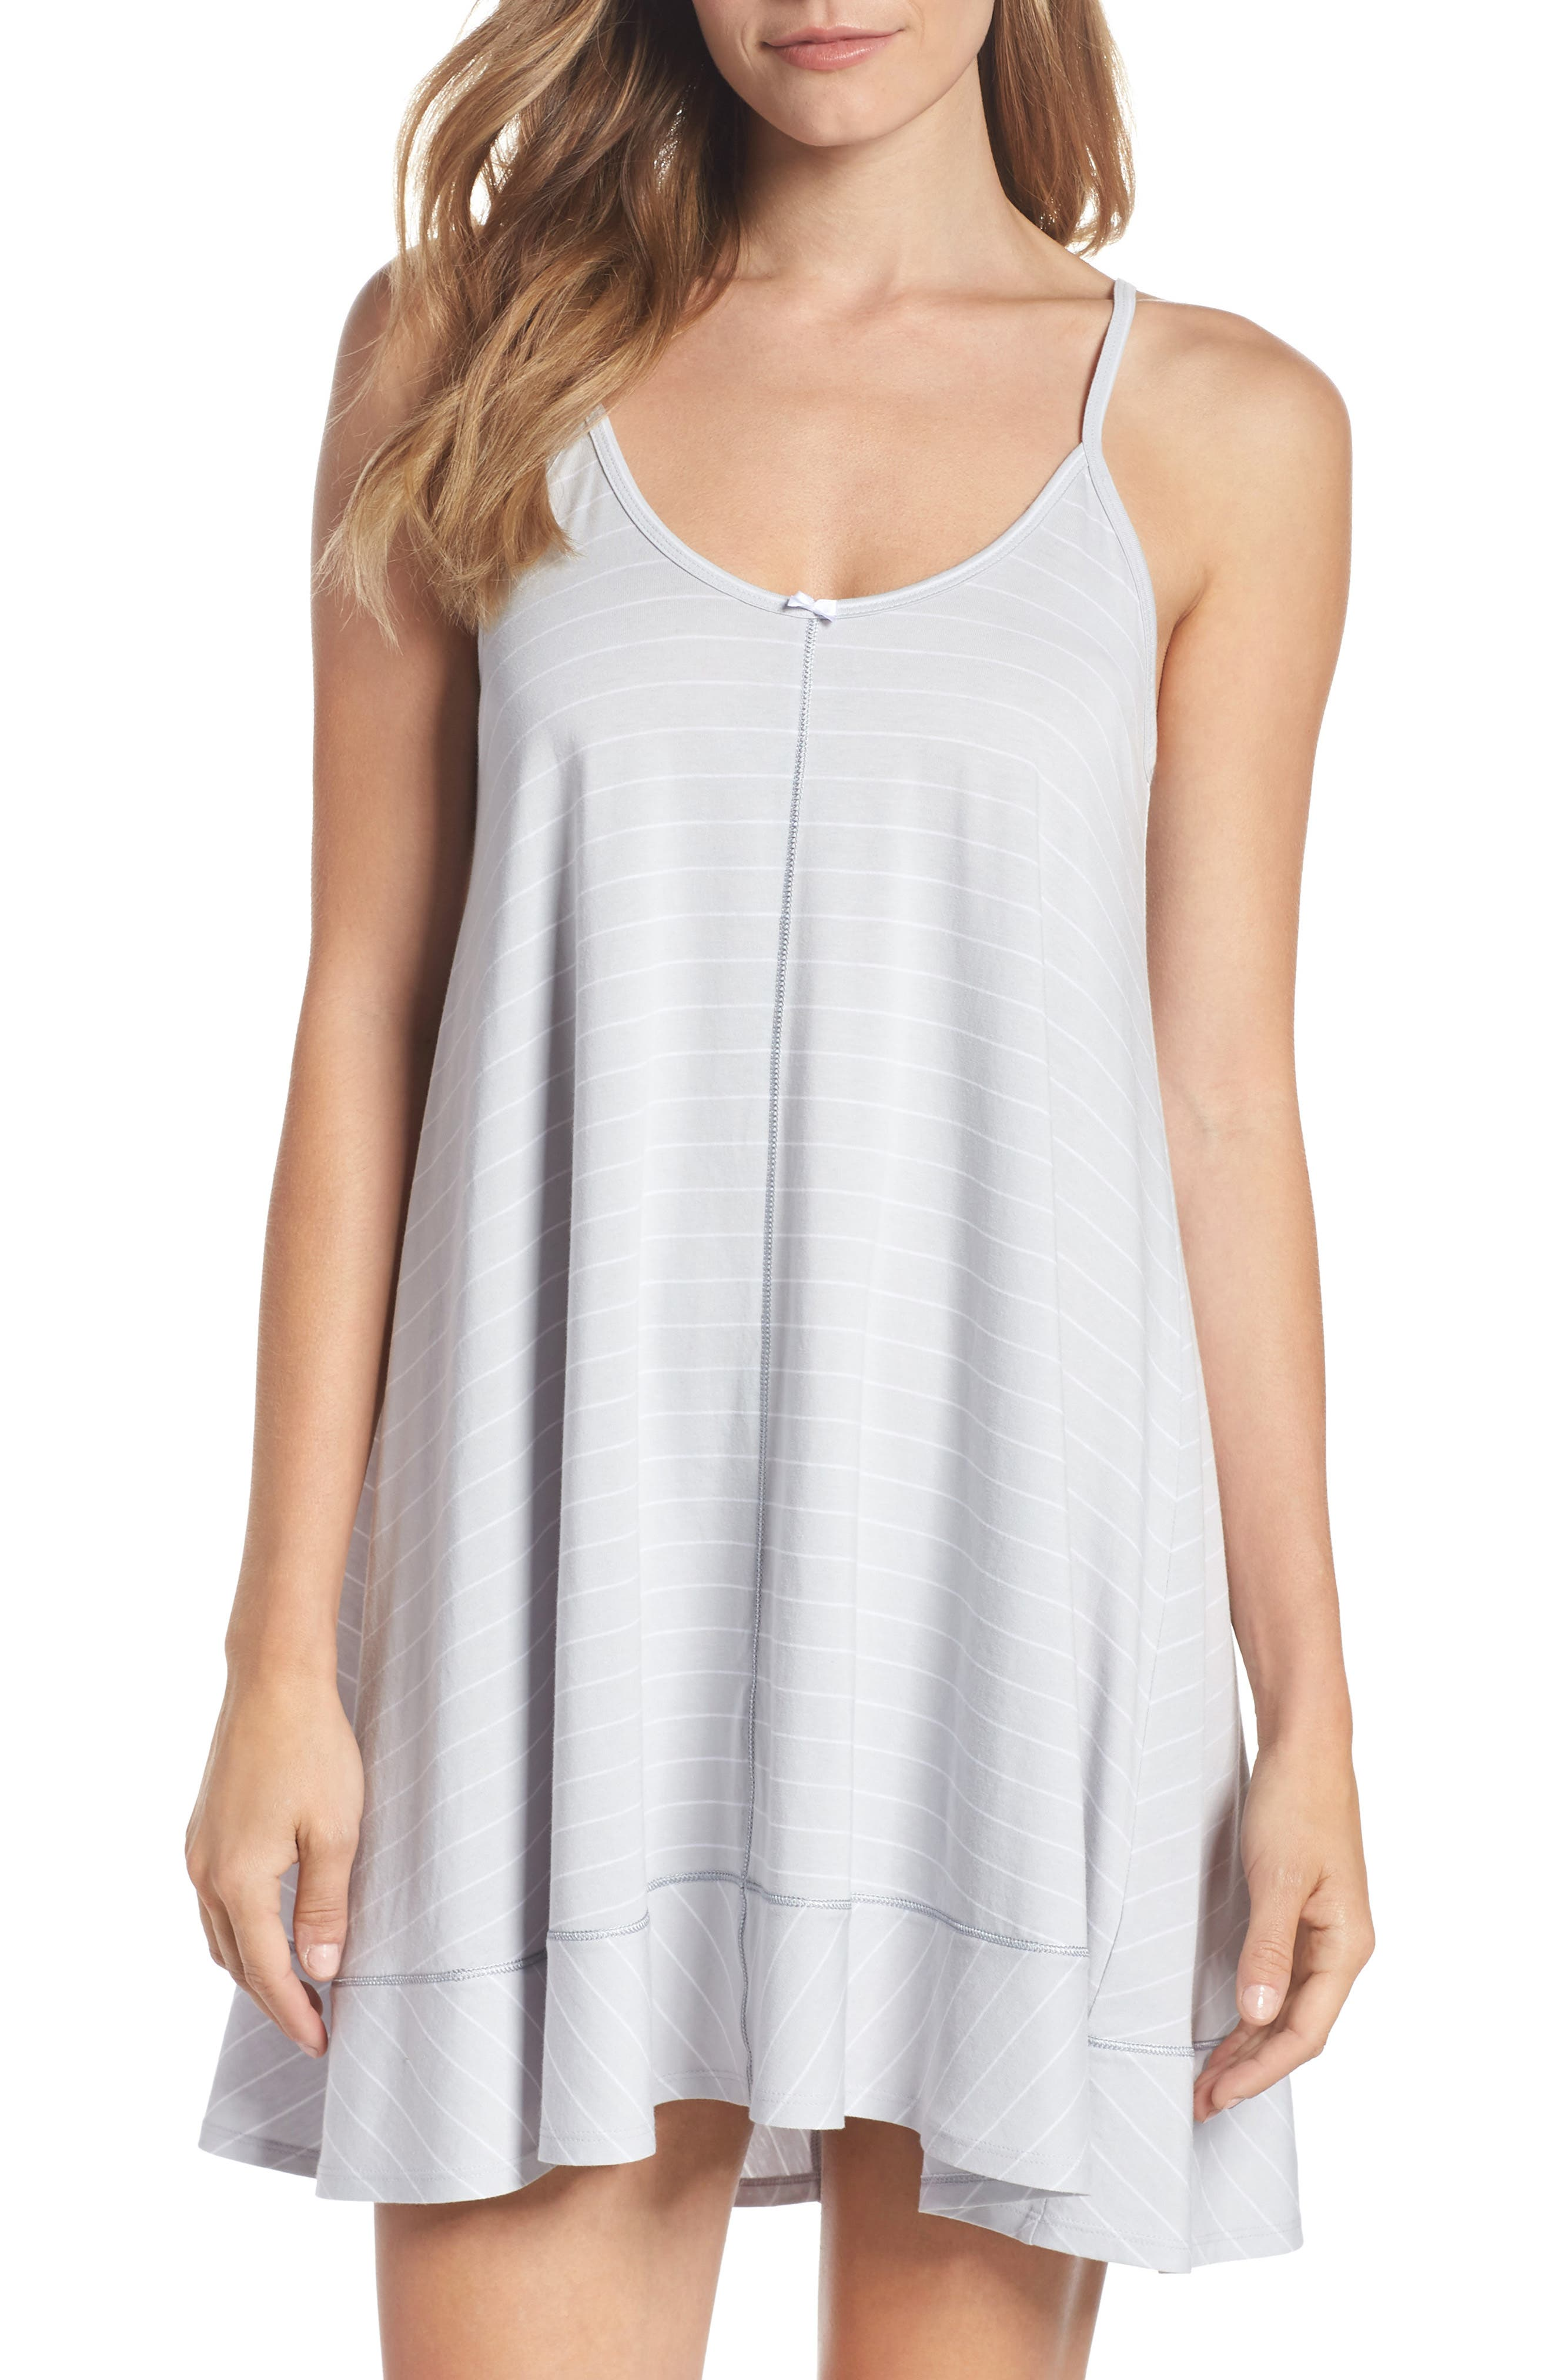 Swing Chemise,                             Main thumbnail 1, color,                             MICROCHIP GRAY STRIPE